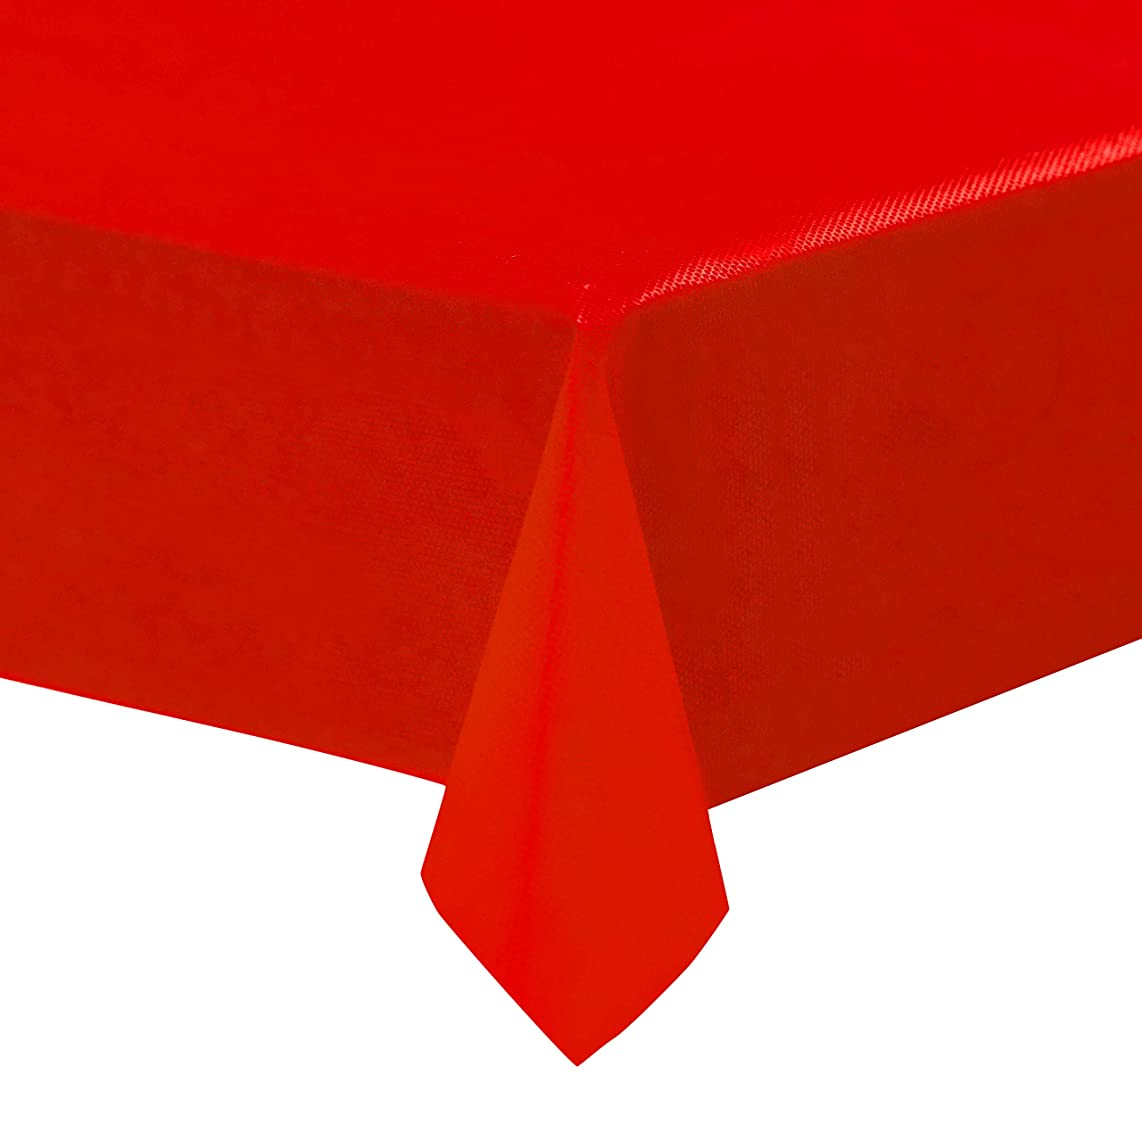 Red Plastic Tablecloths - 12-Pack, 54 x 108 Inches Table Cloths, Rectangular Disposable Table Covers, Fits up to 8-Foot Long, Buffet Banquets or Long Picnic Tables, Party Decoration Supplies, 4.5 x 9